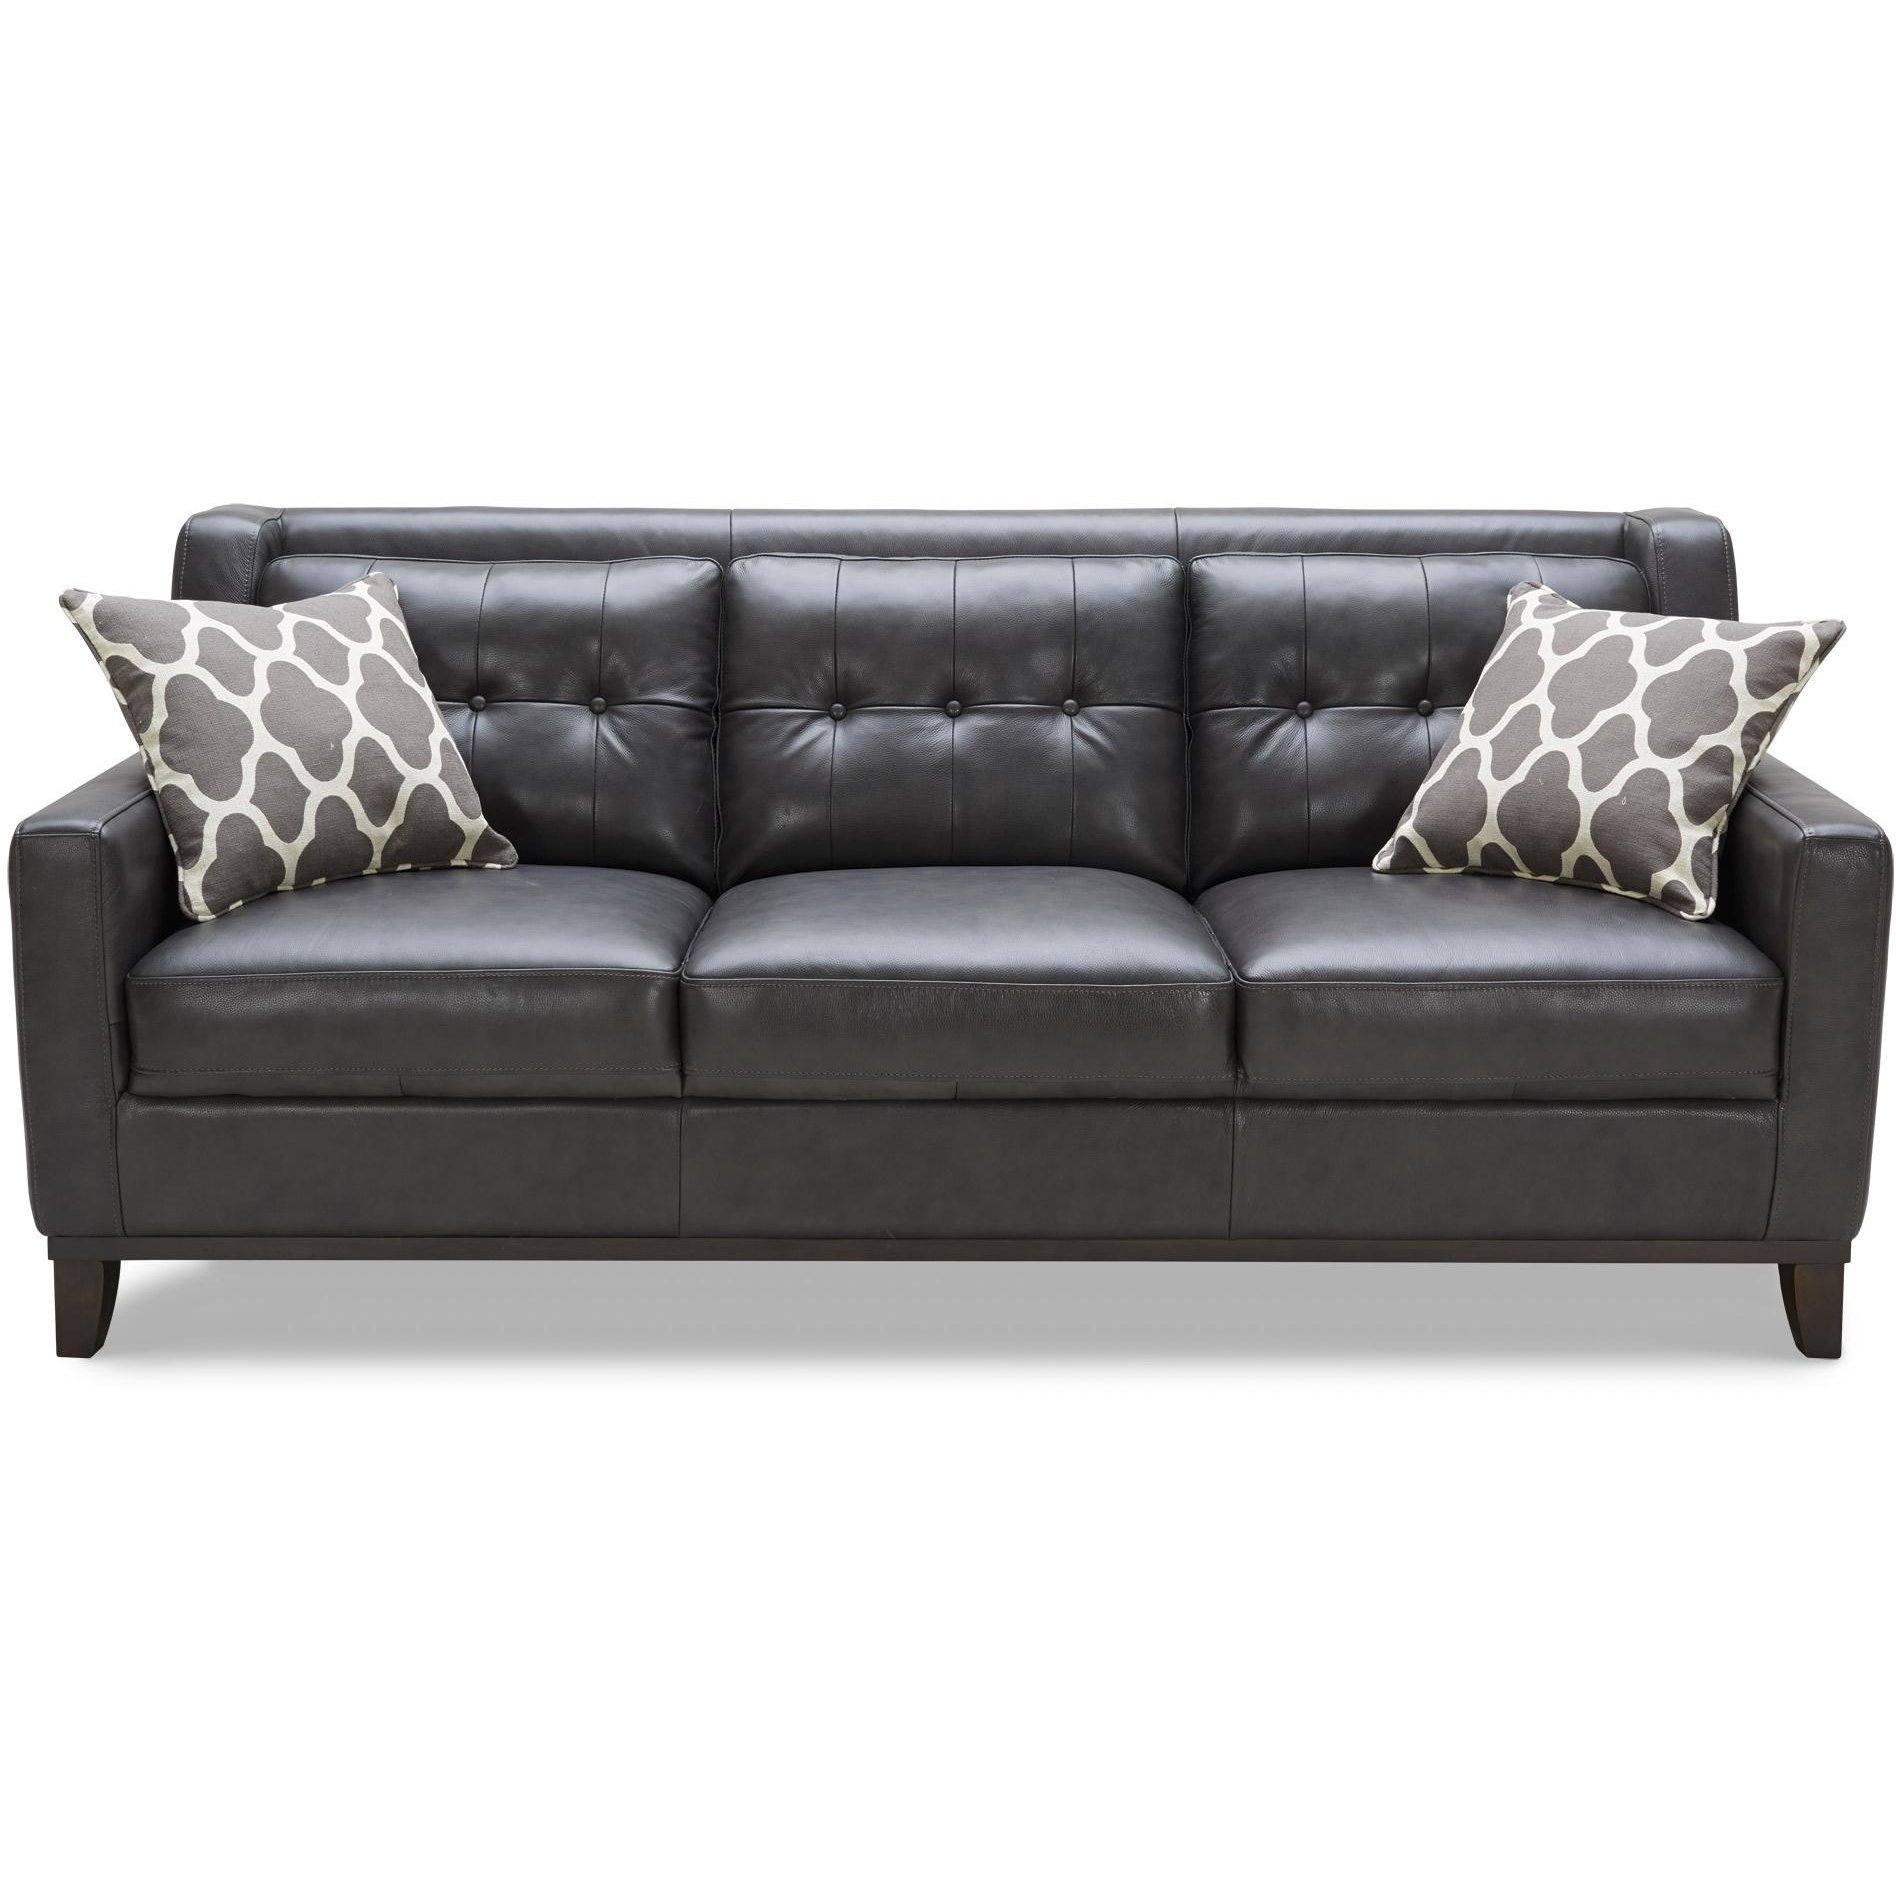 Sofa Set Repair In Hyderabad Leather Sofa Cracking Home The Honoroak